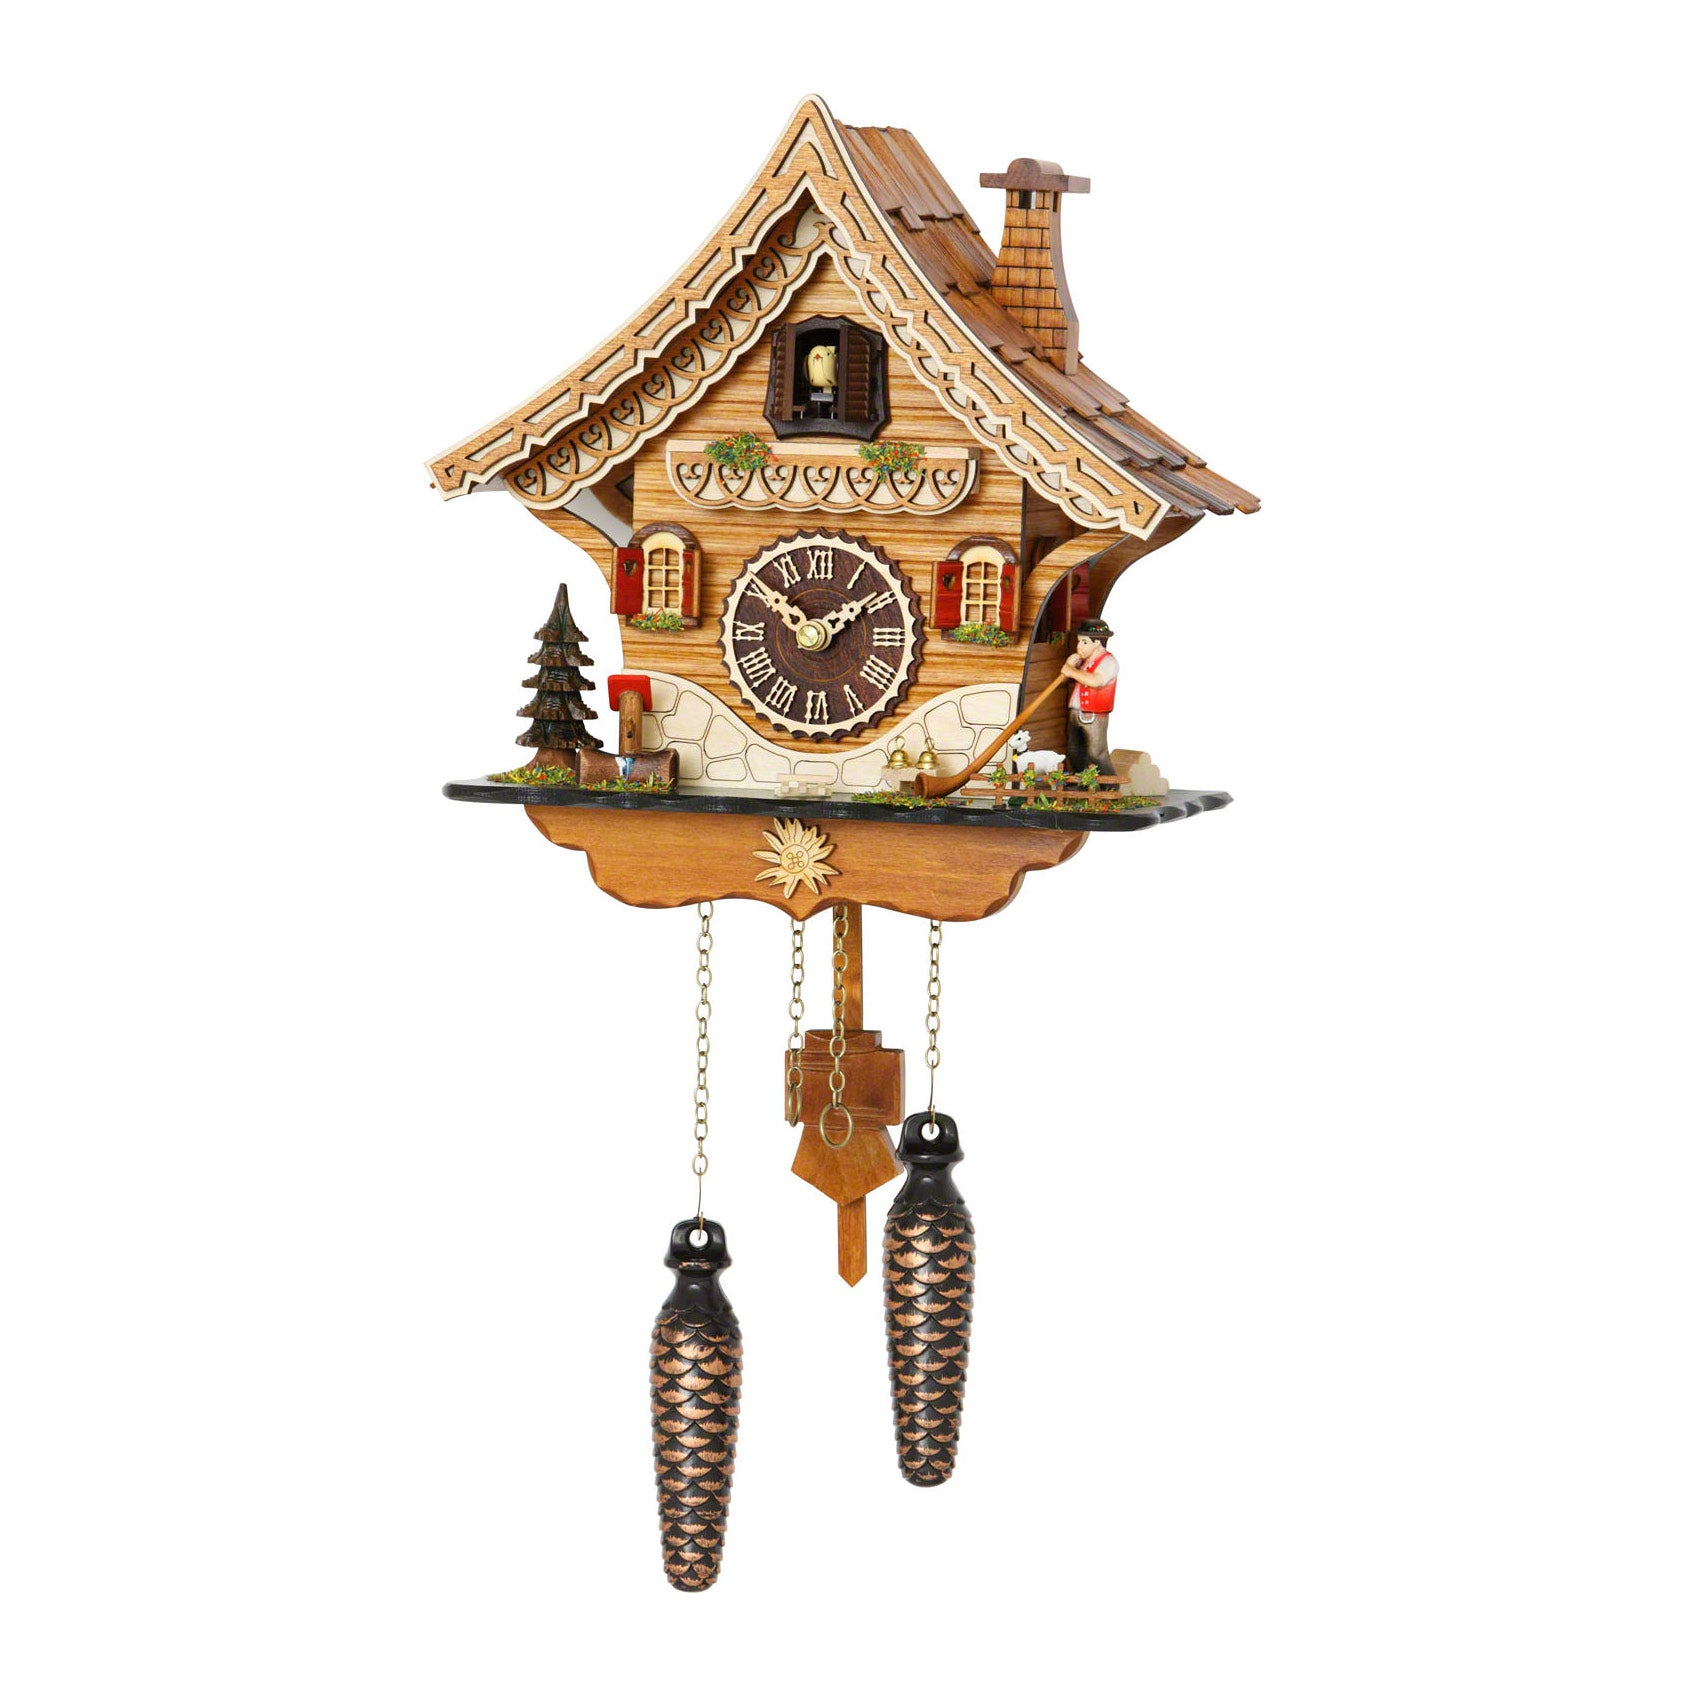 Only The Best Cuckoo Clocks In The World